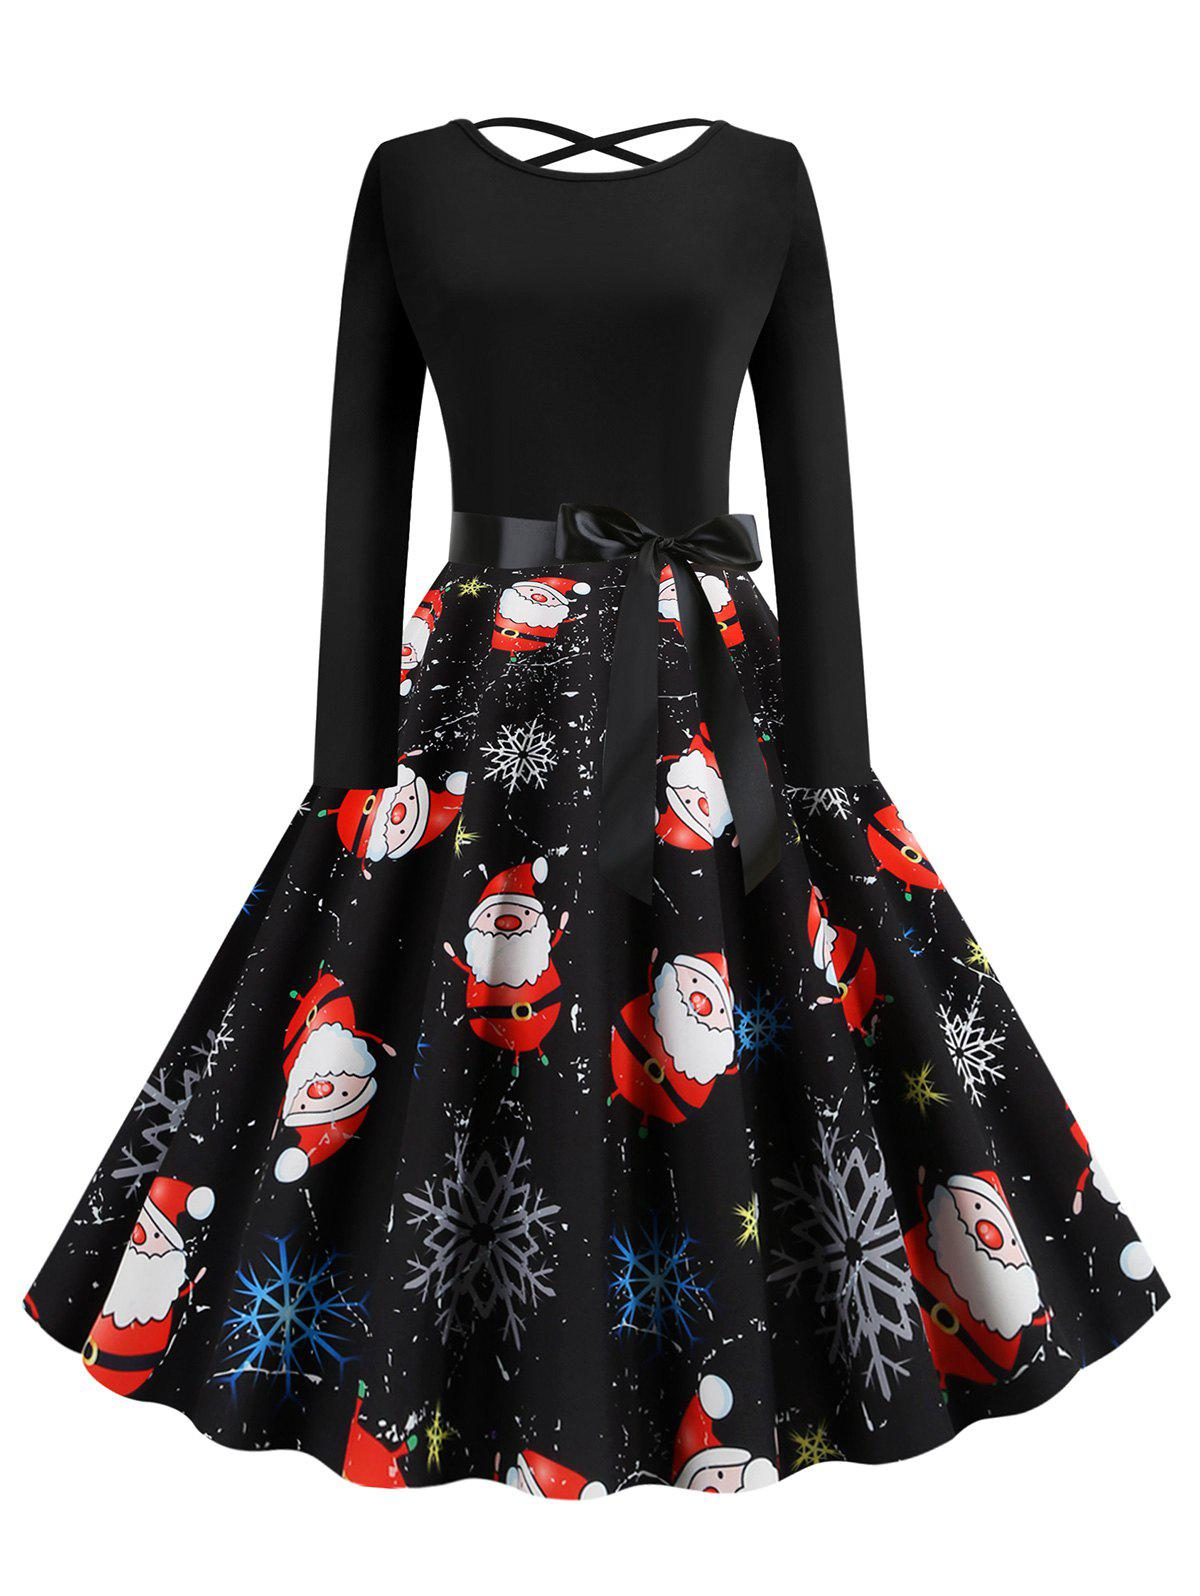 Lattice Christmas Santa Claus Snowflake Print Dress - BLACK XL